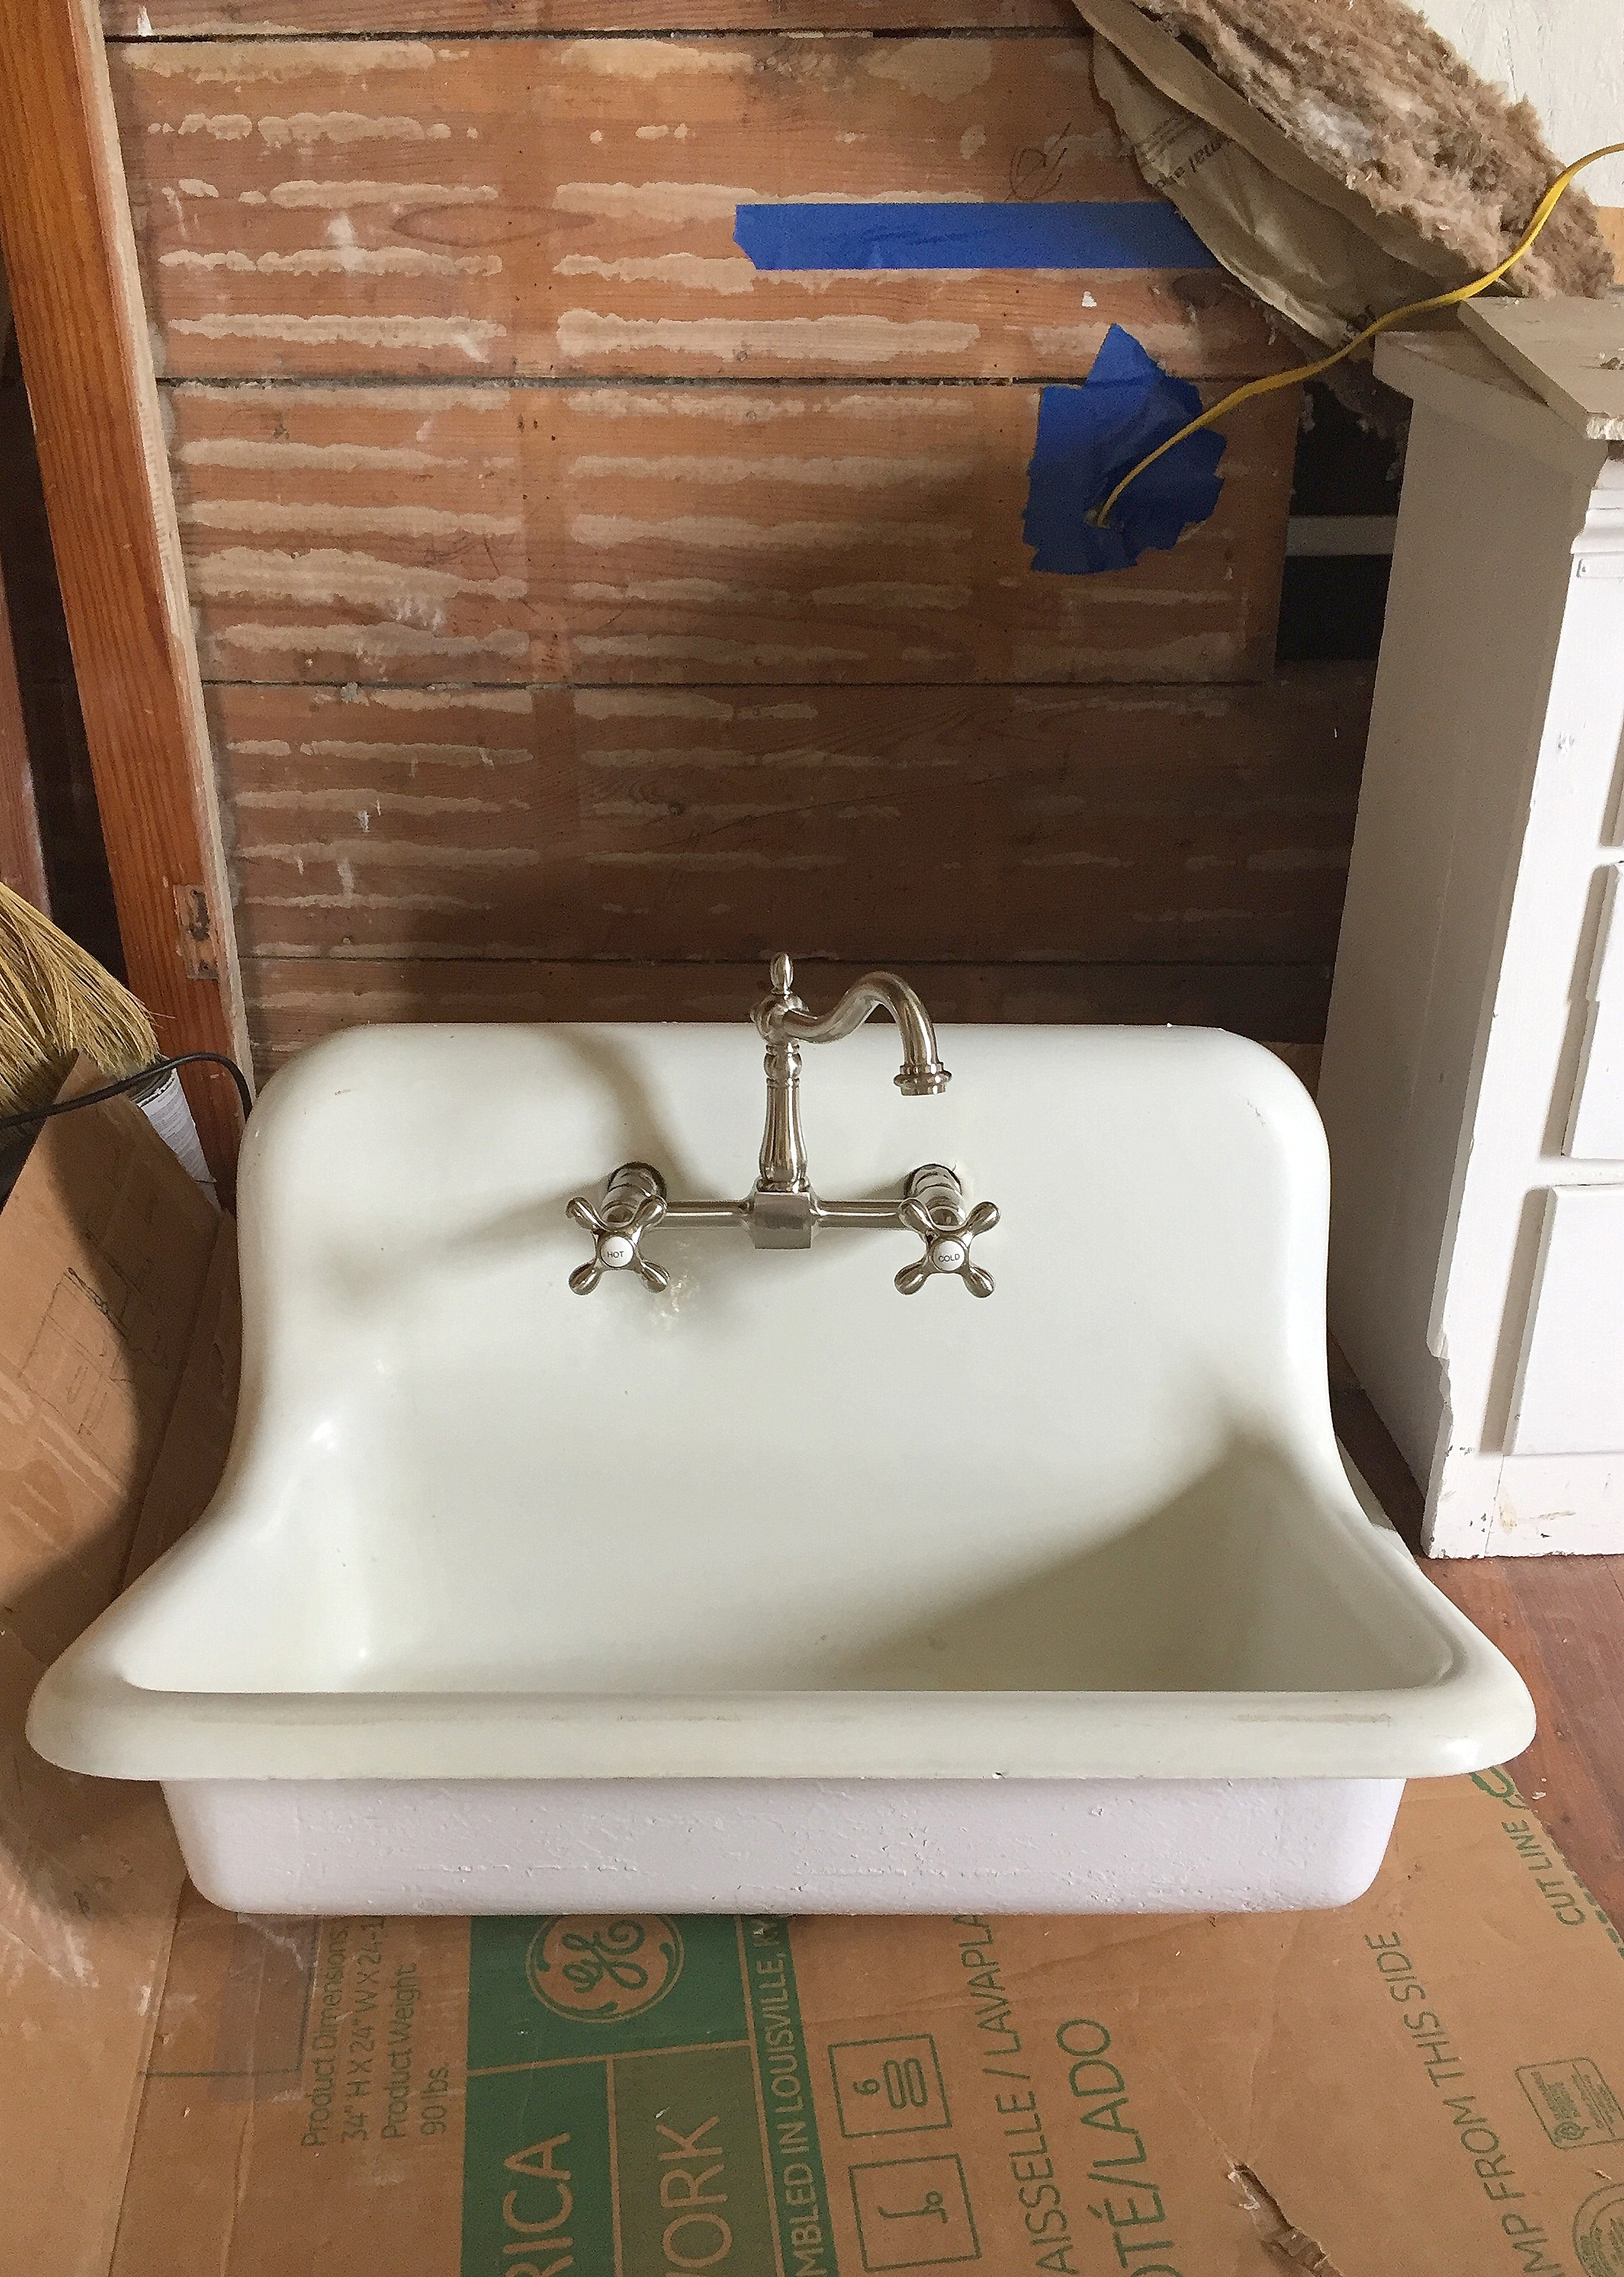 Antique Farm Sink Makeover Tips For Restoring An Old Sink On A Budget Bryarton Farm